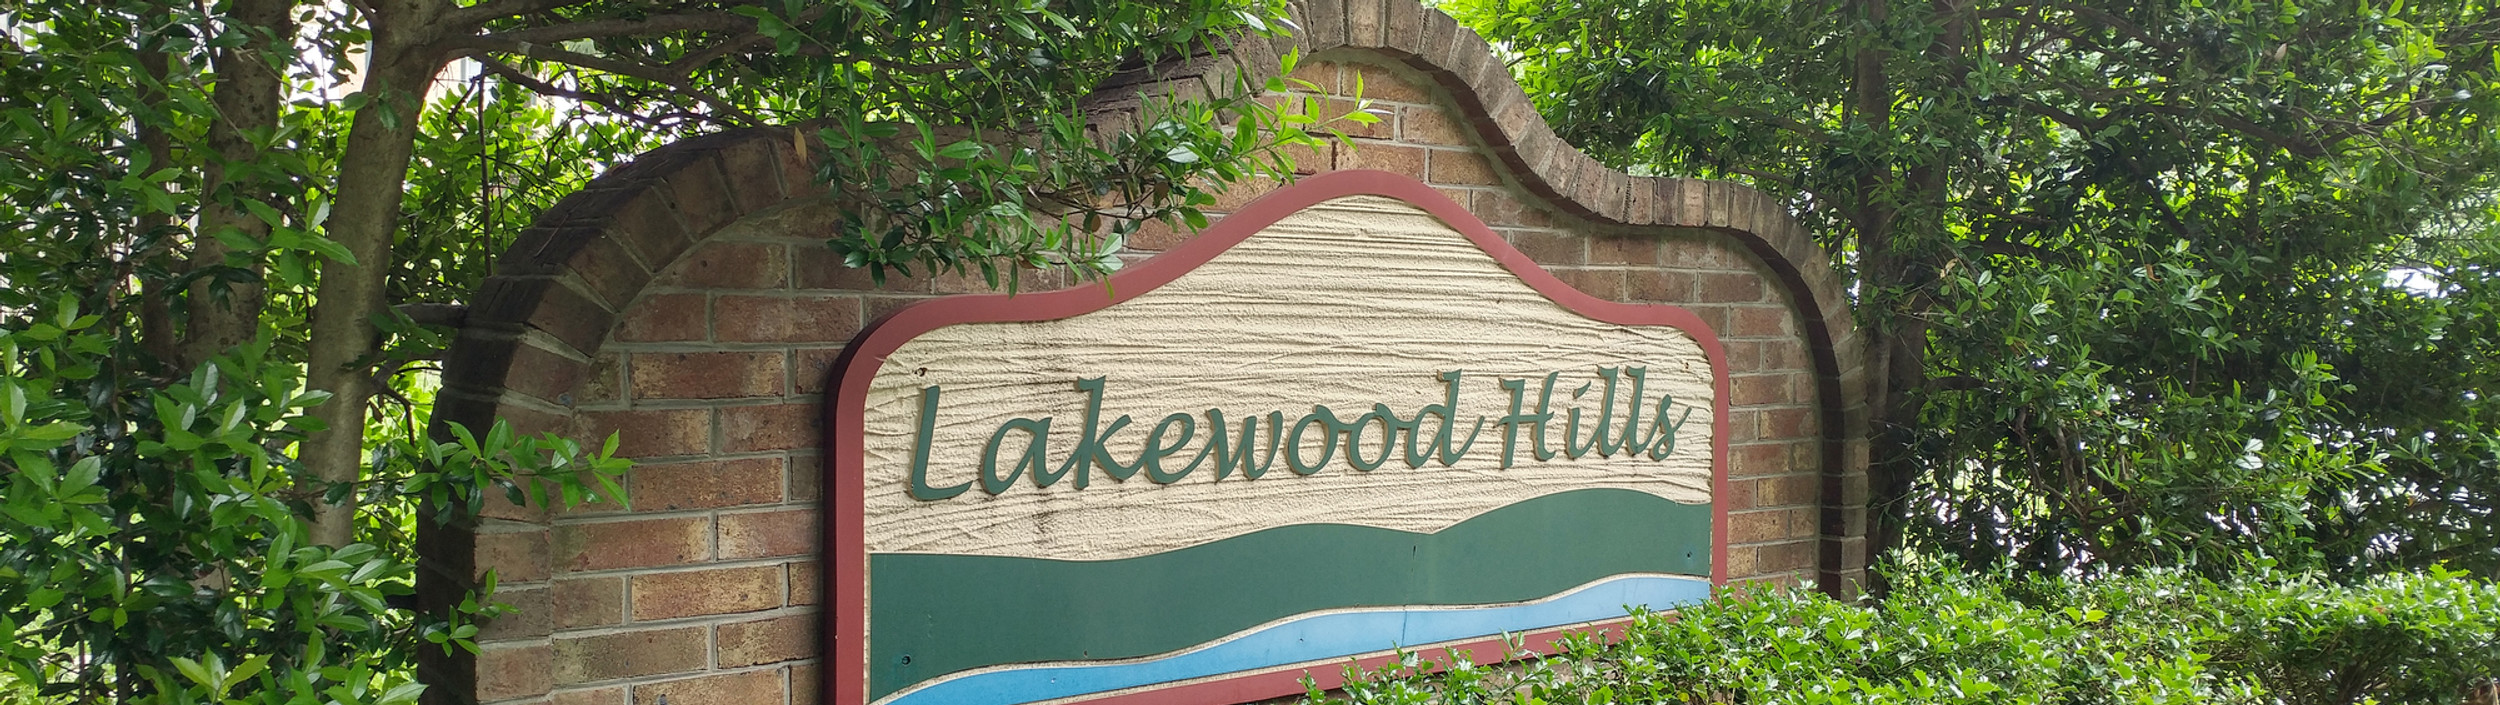 HOA Documents | lakewoodhills1